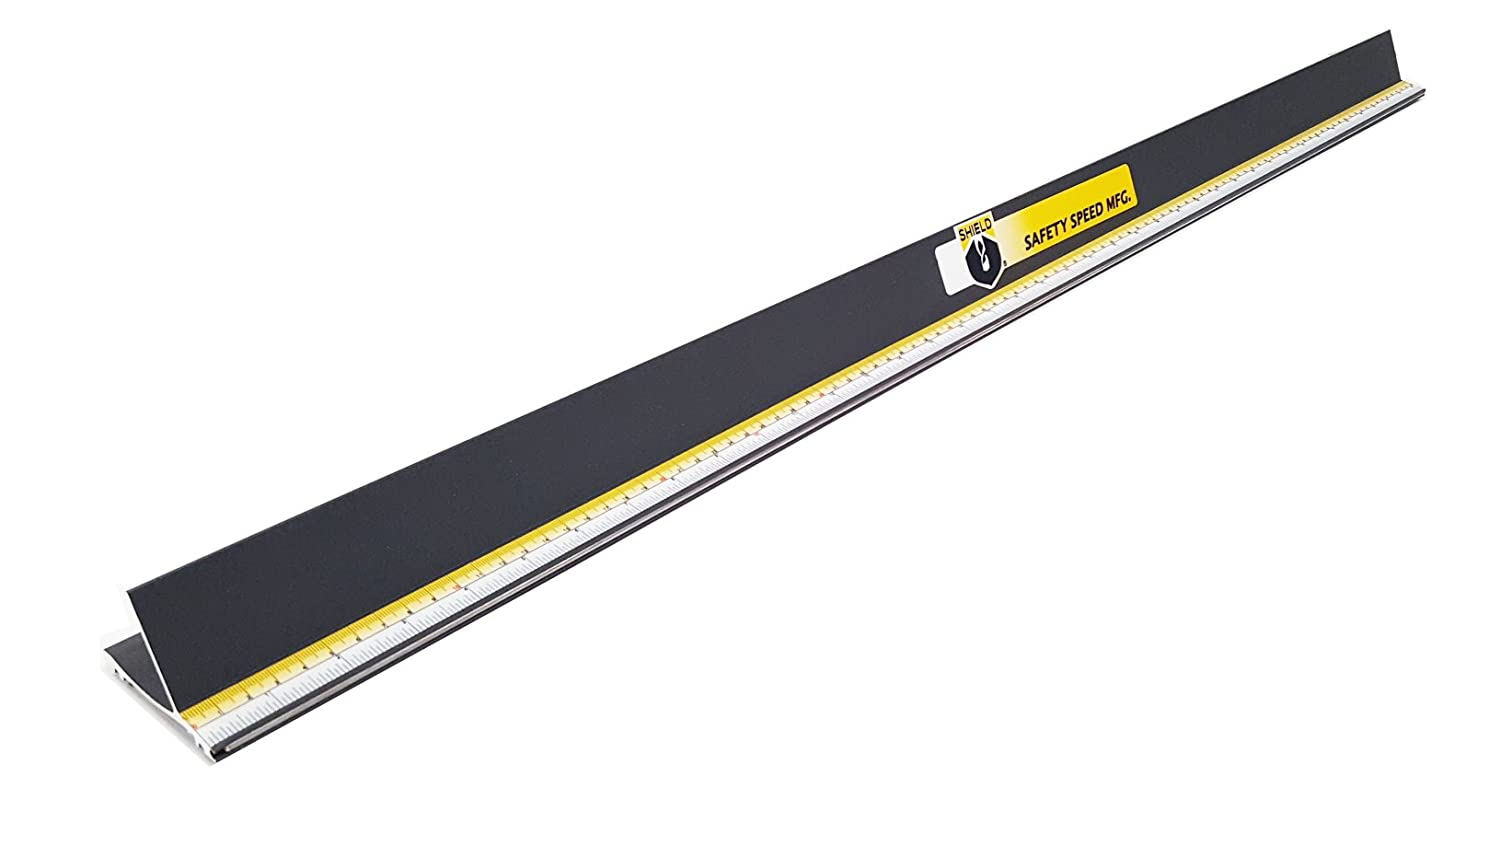 Shield Safety Straight Edge Ruler 24